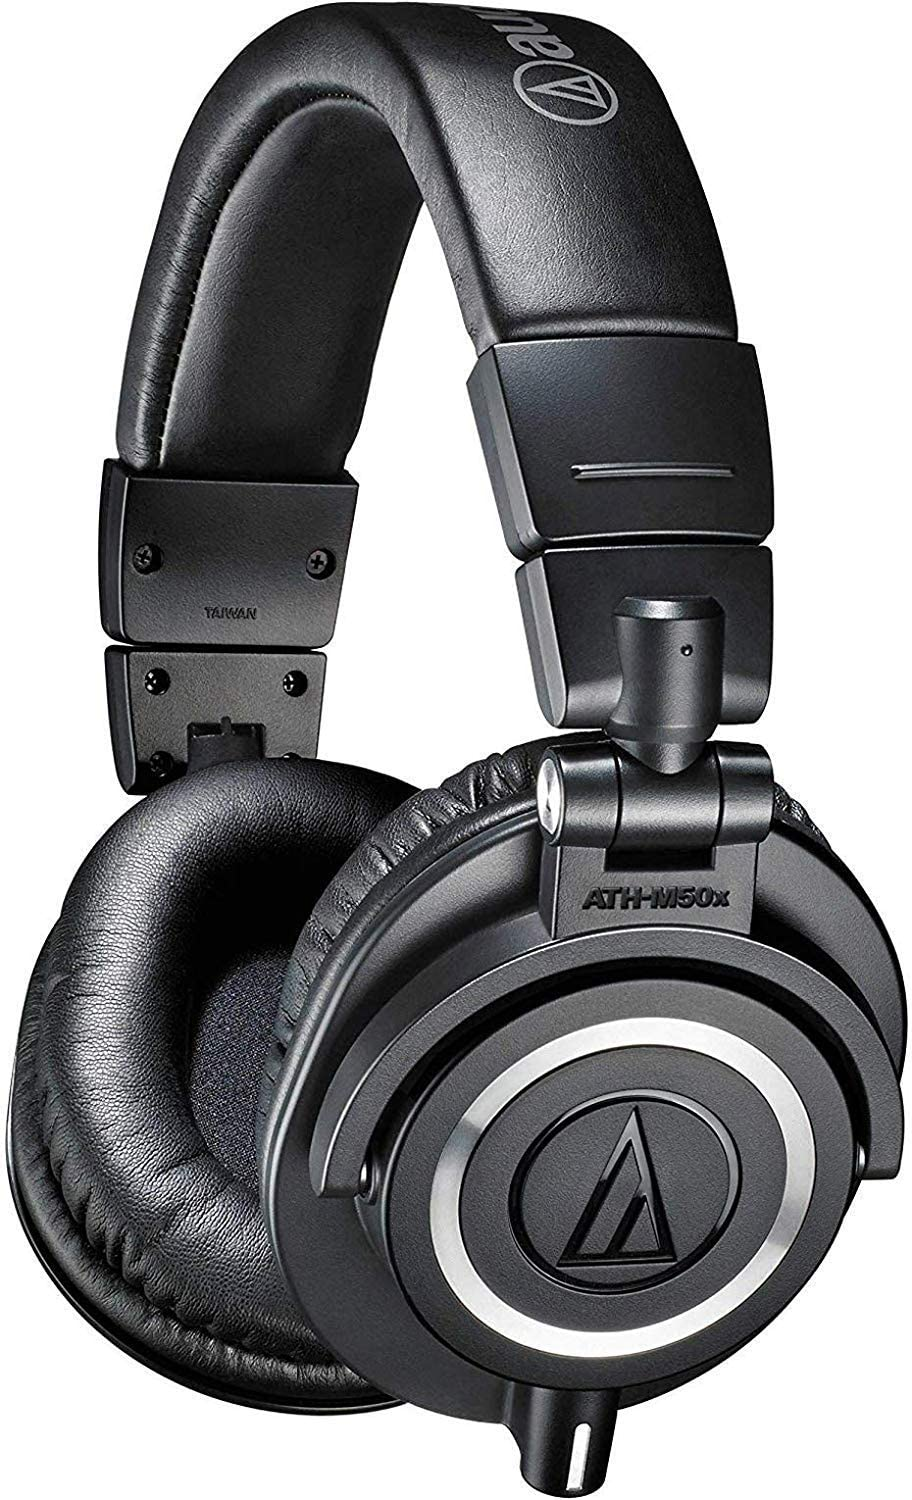 71WNWRLJCsL. AC SL1500 Best Streaming Headphones in [year] - 7 Great Products